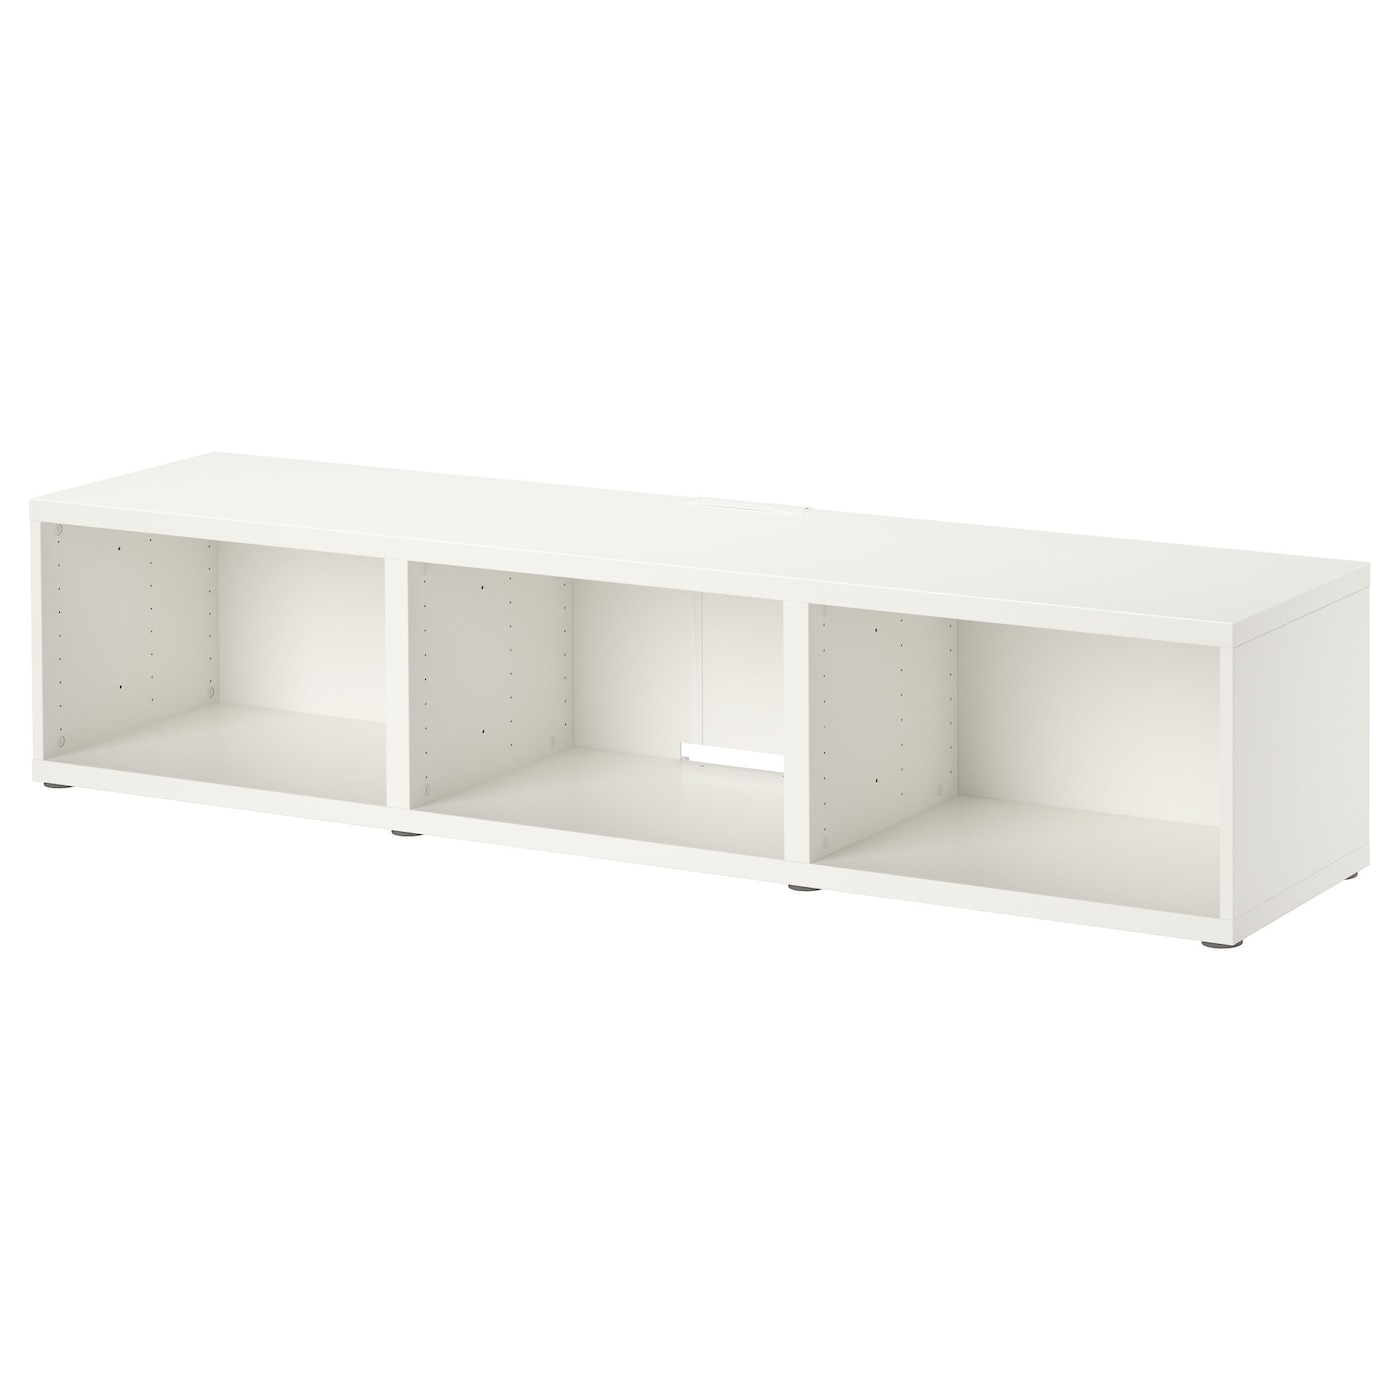 Best Banc Tv Blanc 180x40x38 Cm Ikea # Meuble Tv Blanc Suspendu Ikea